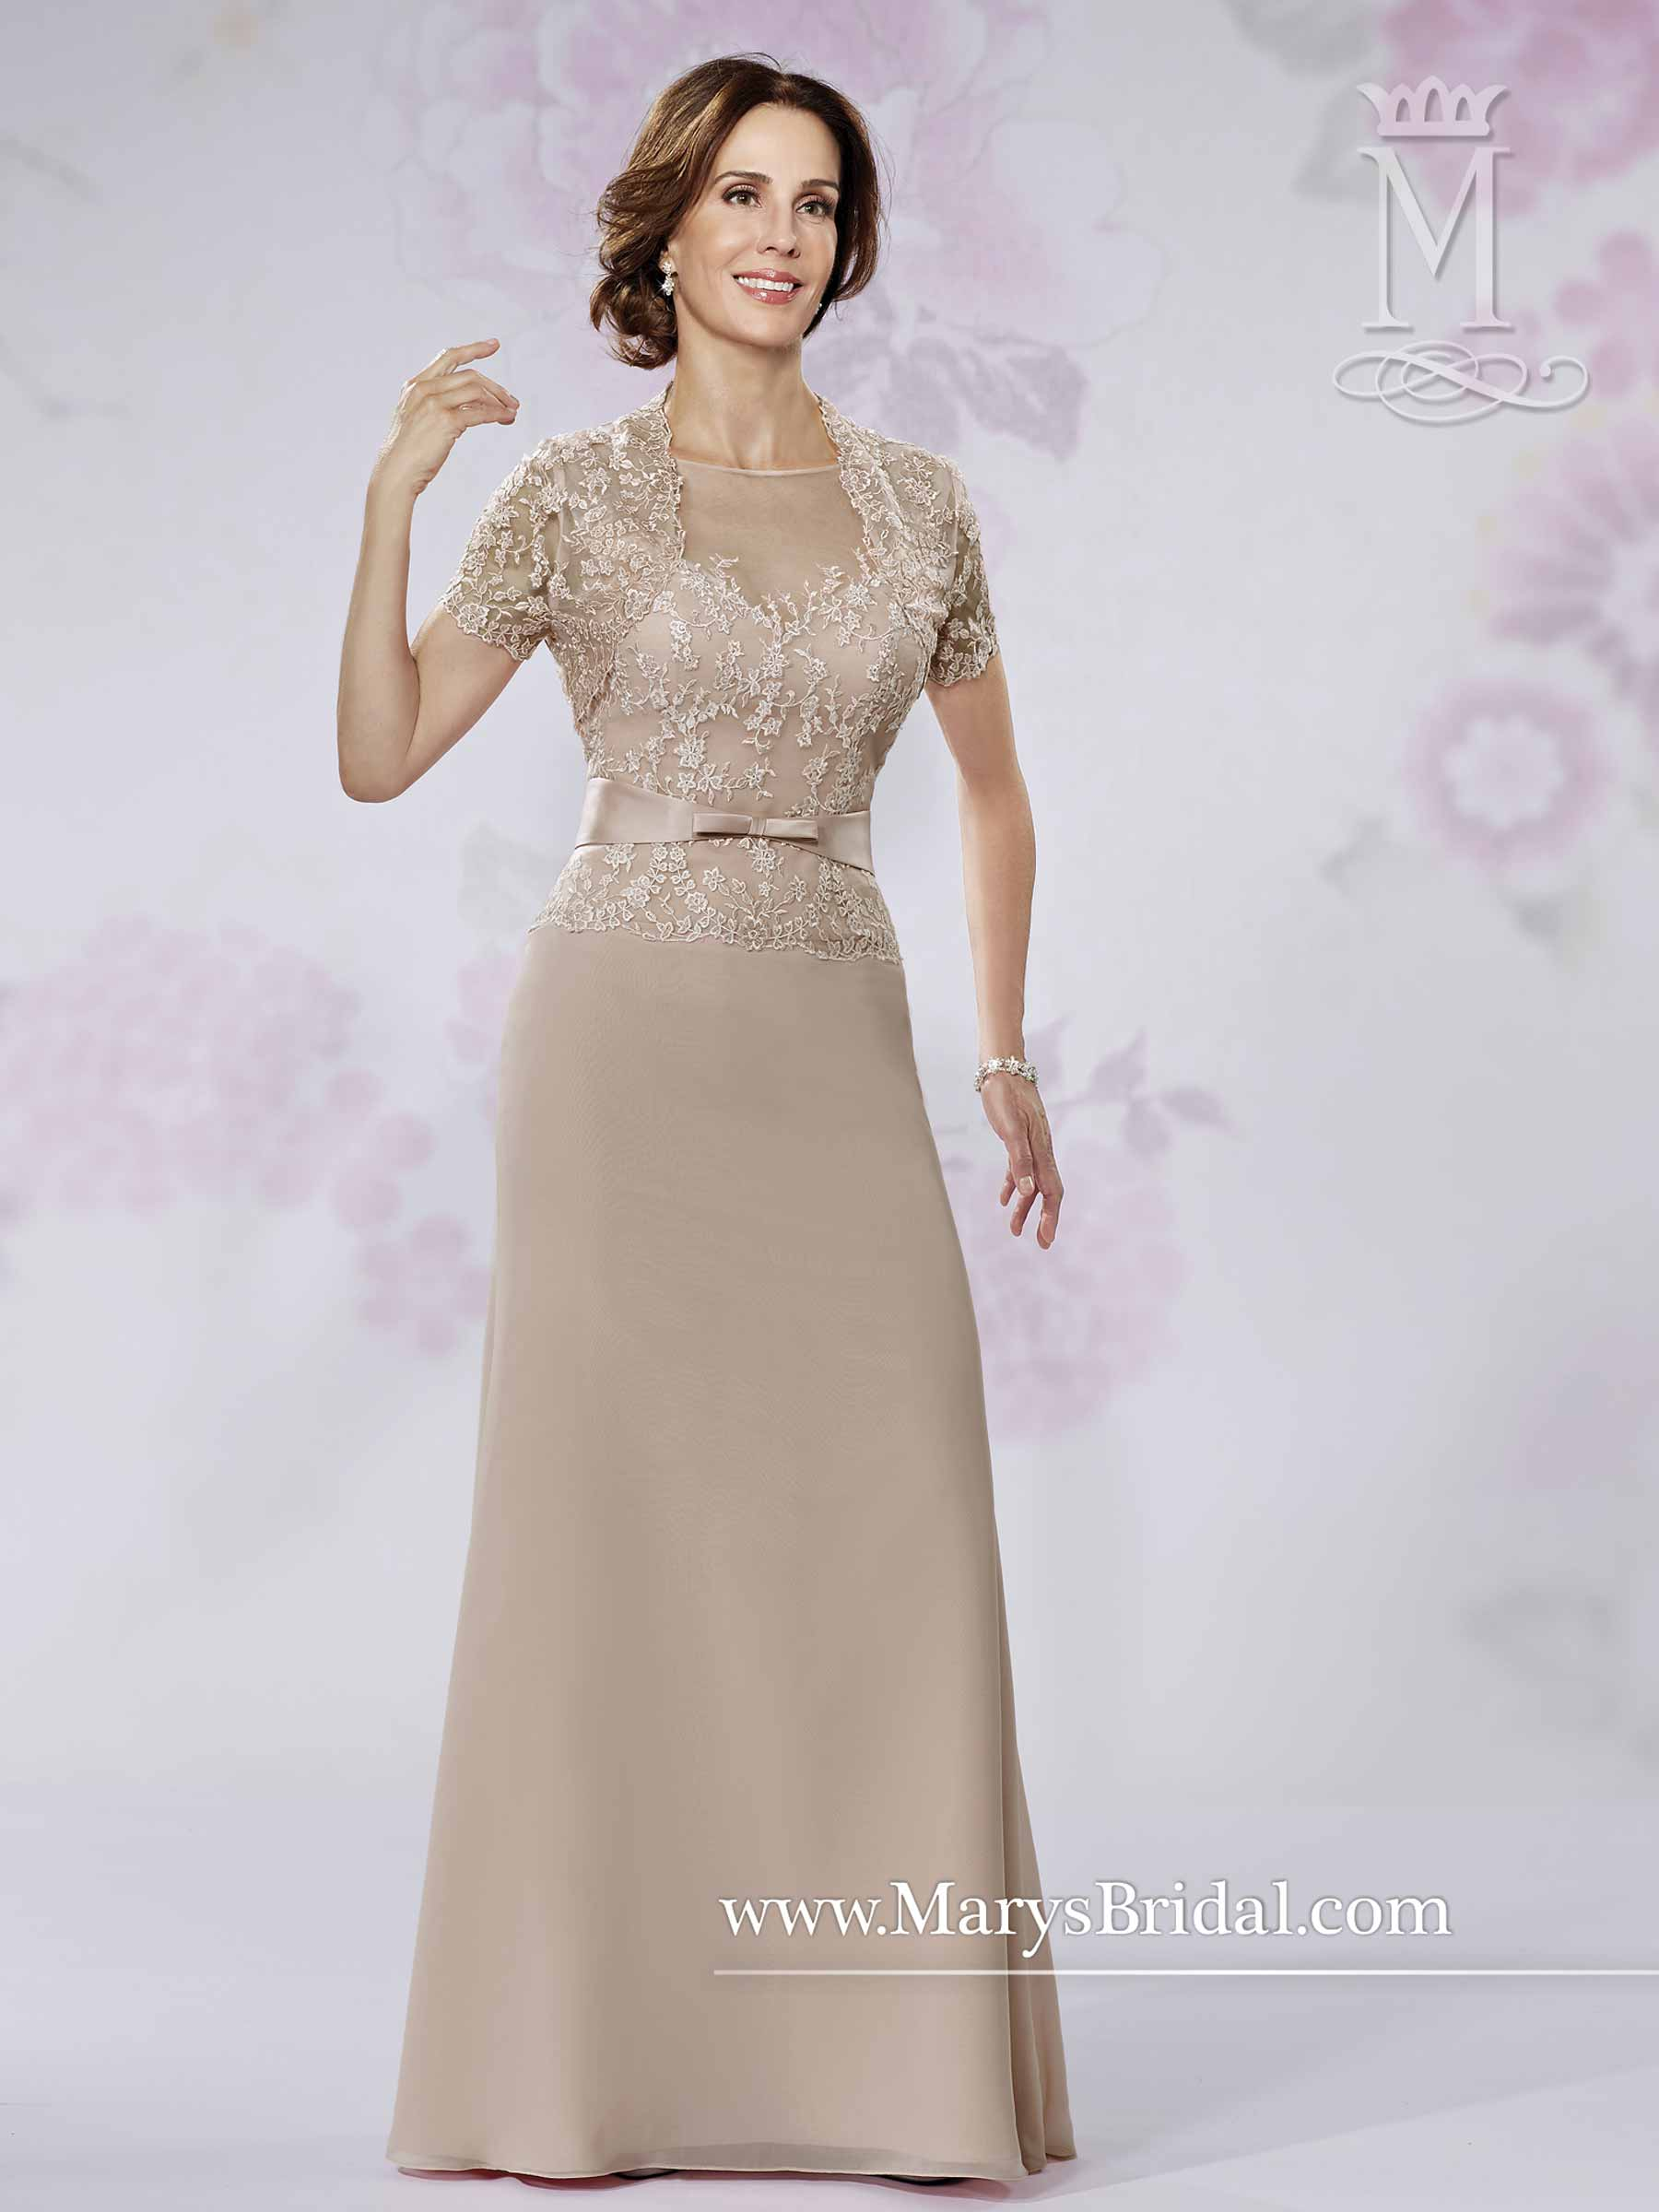 Mother Of The Bride Dresses | Style - M2725 in Shown in Mocha ...